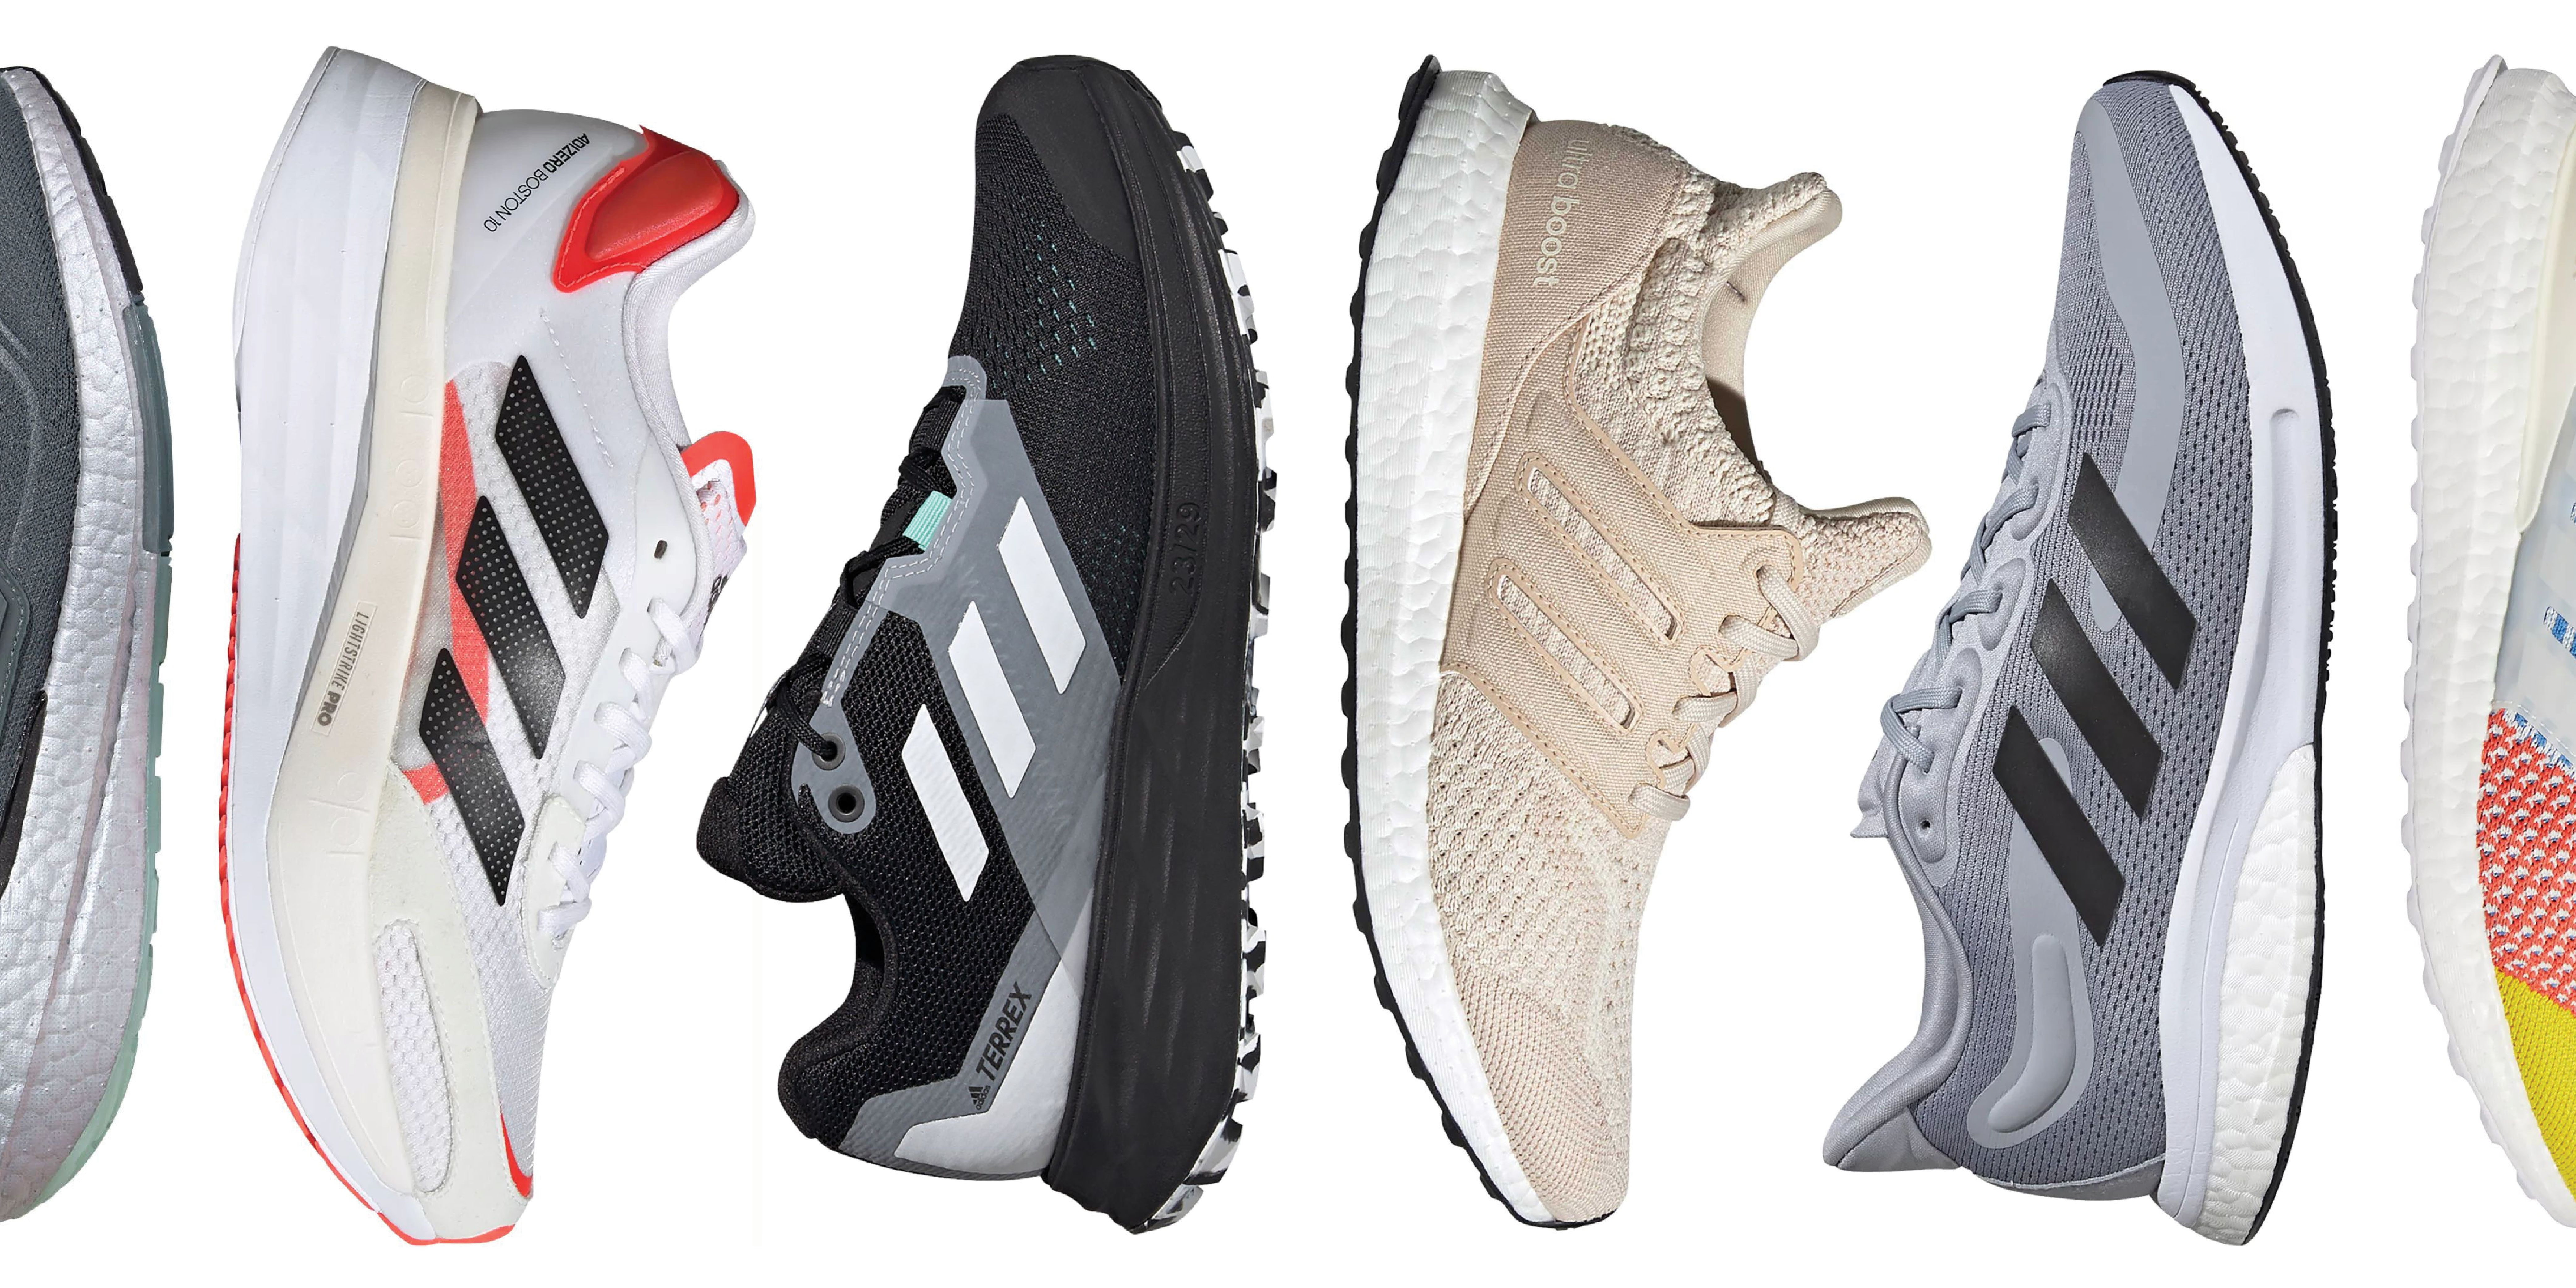 Adidas Running Shoes for Women | Best Running Shoes 2021